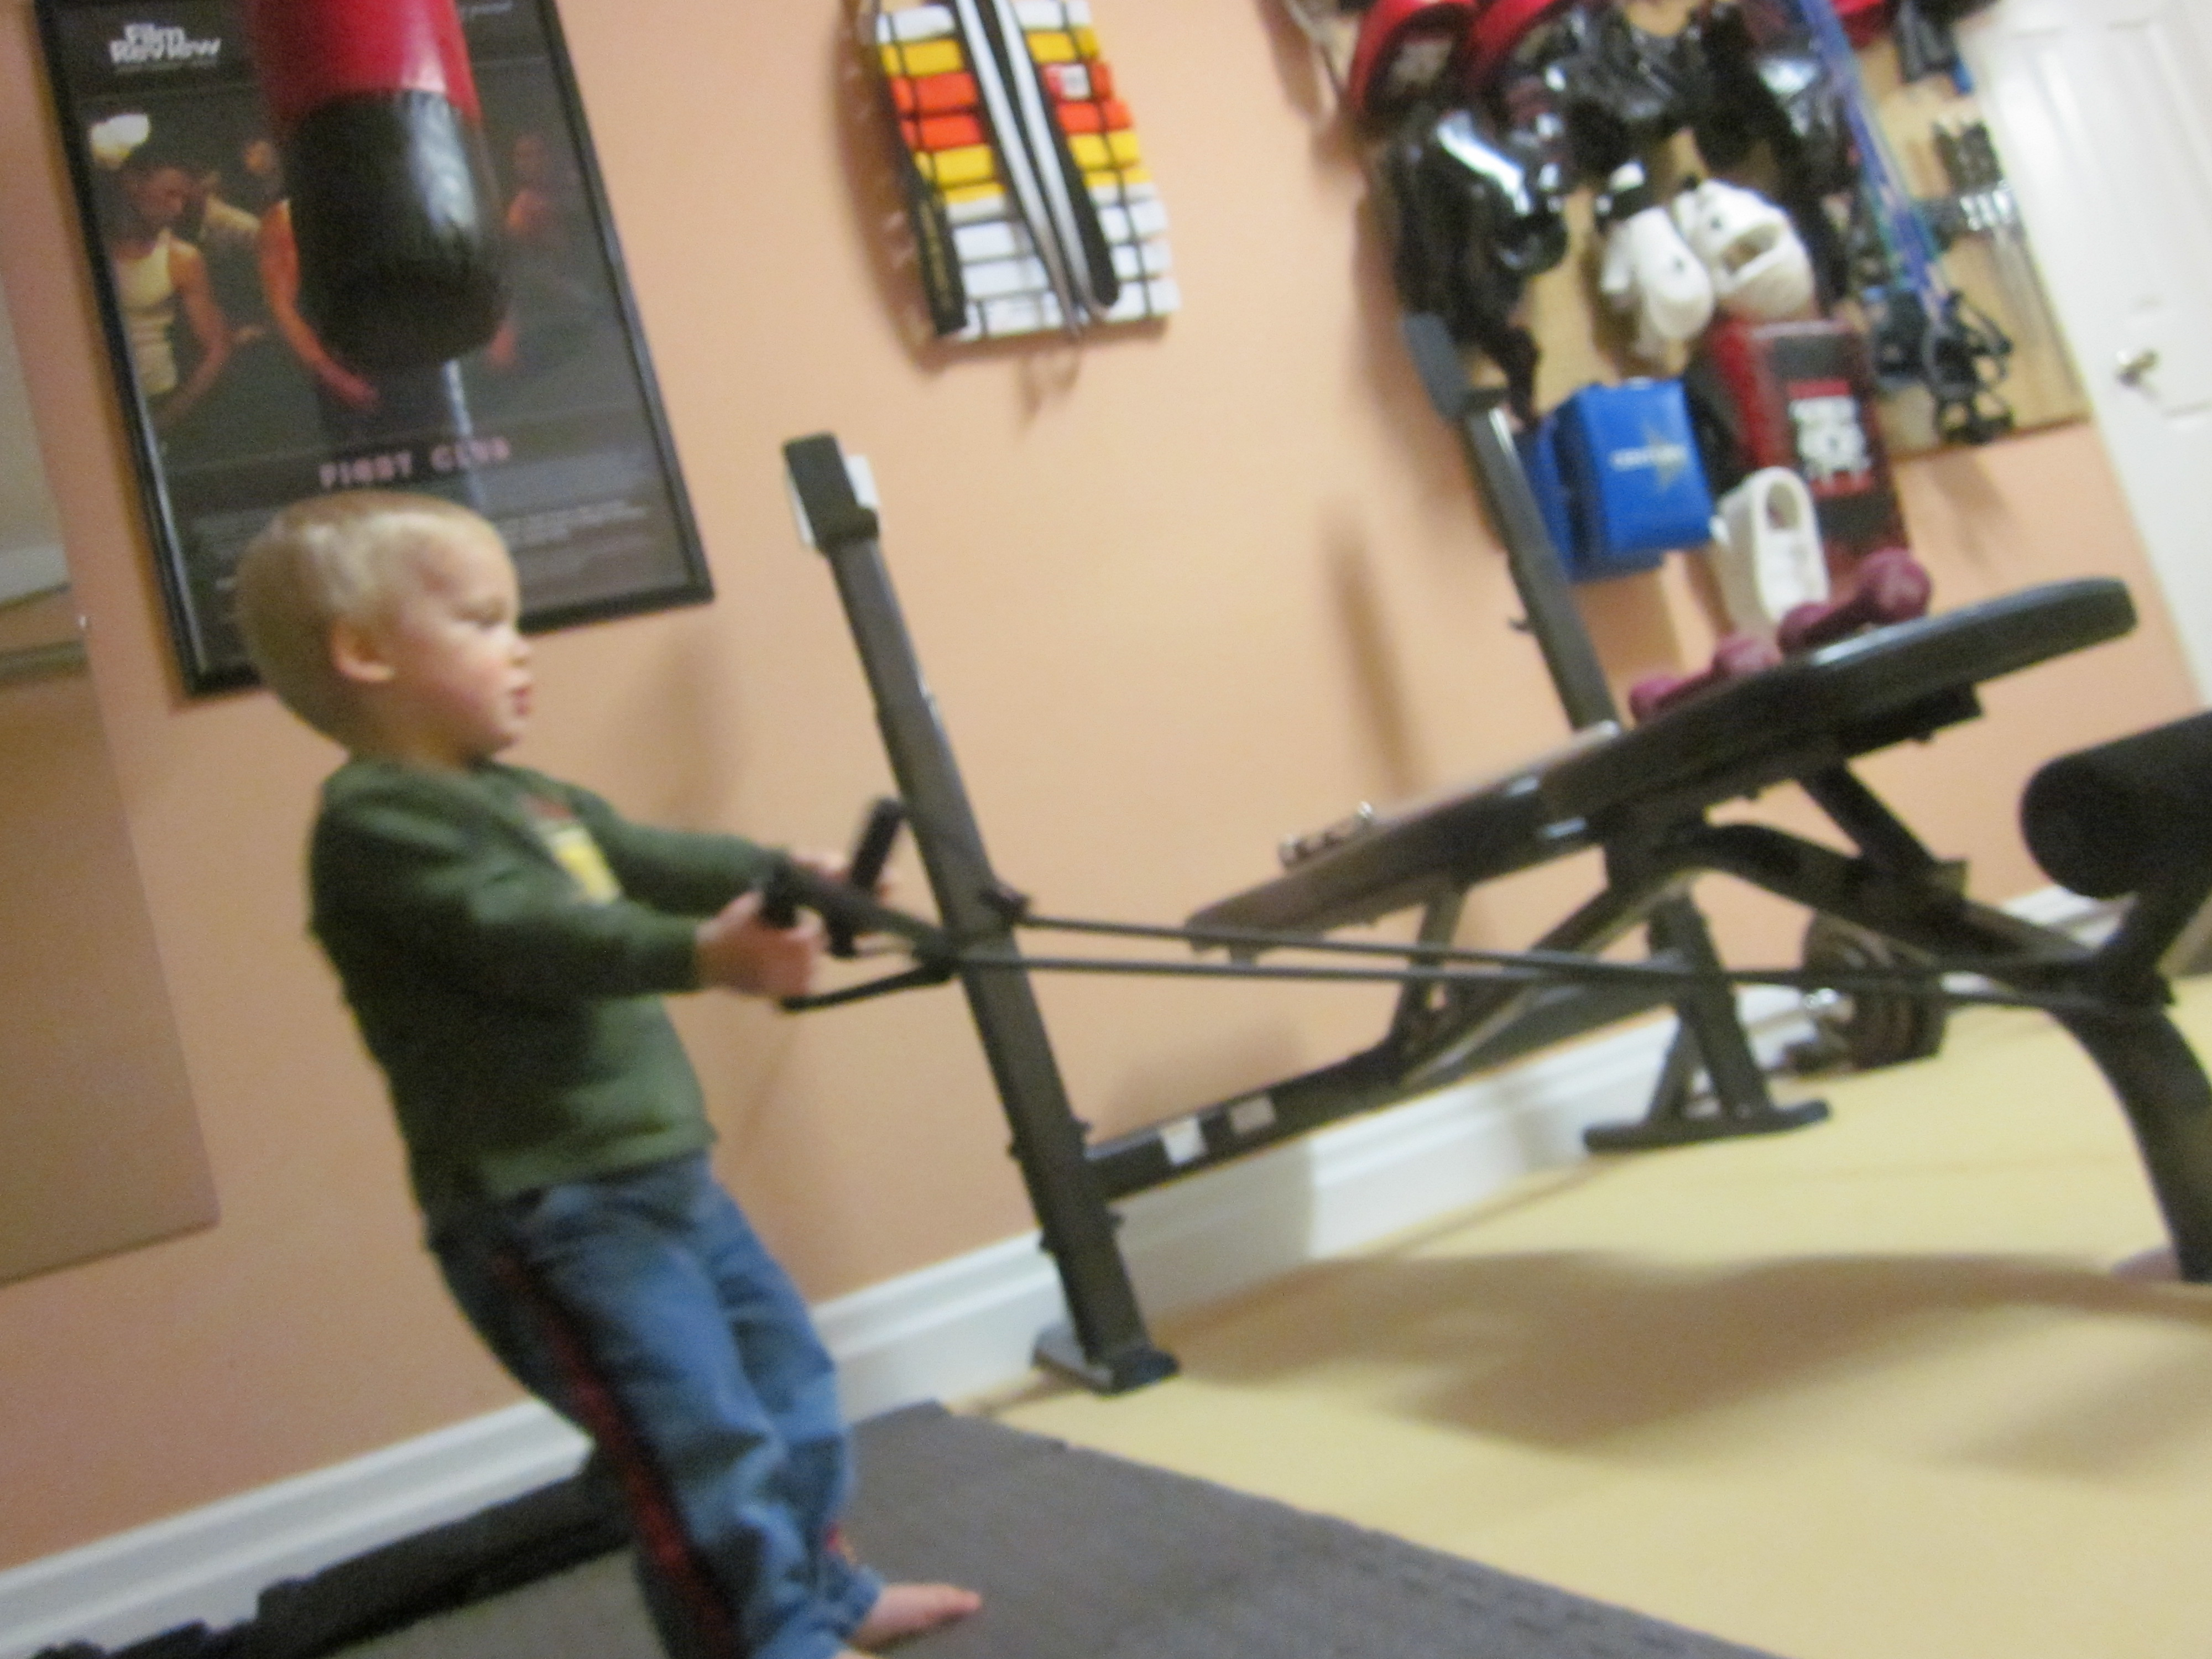 My garage gymu2026thanks to the art of manliness mastering the art of